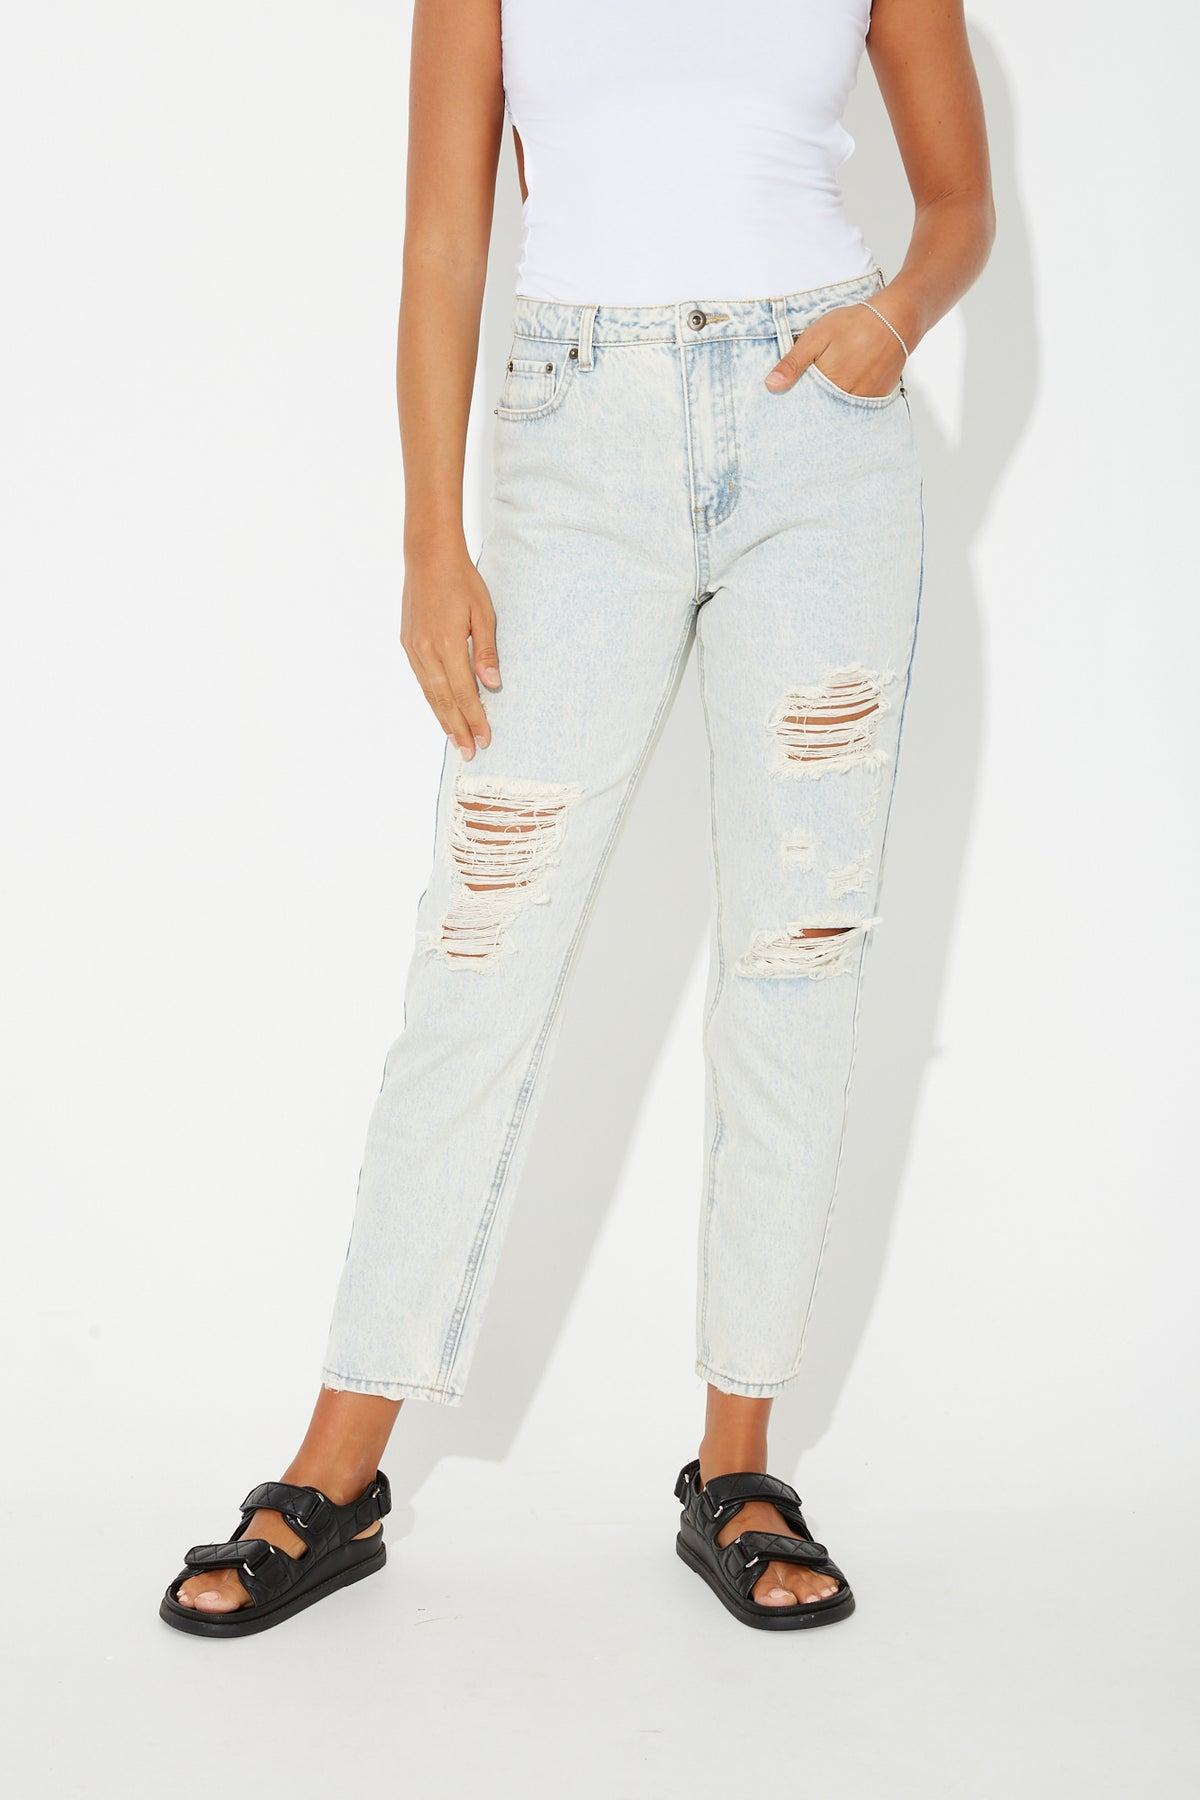 Celeste Distressed Jean Vintage Blue